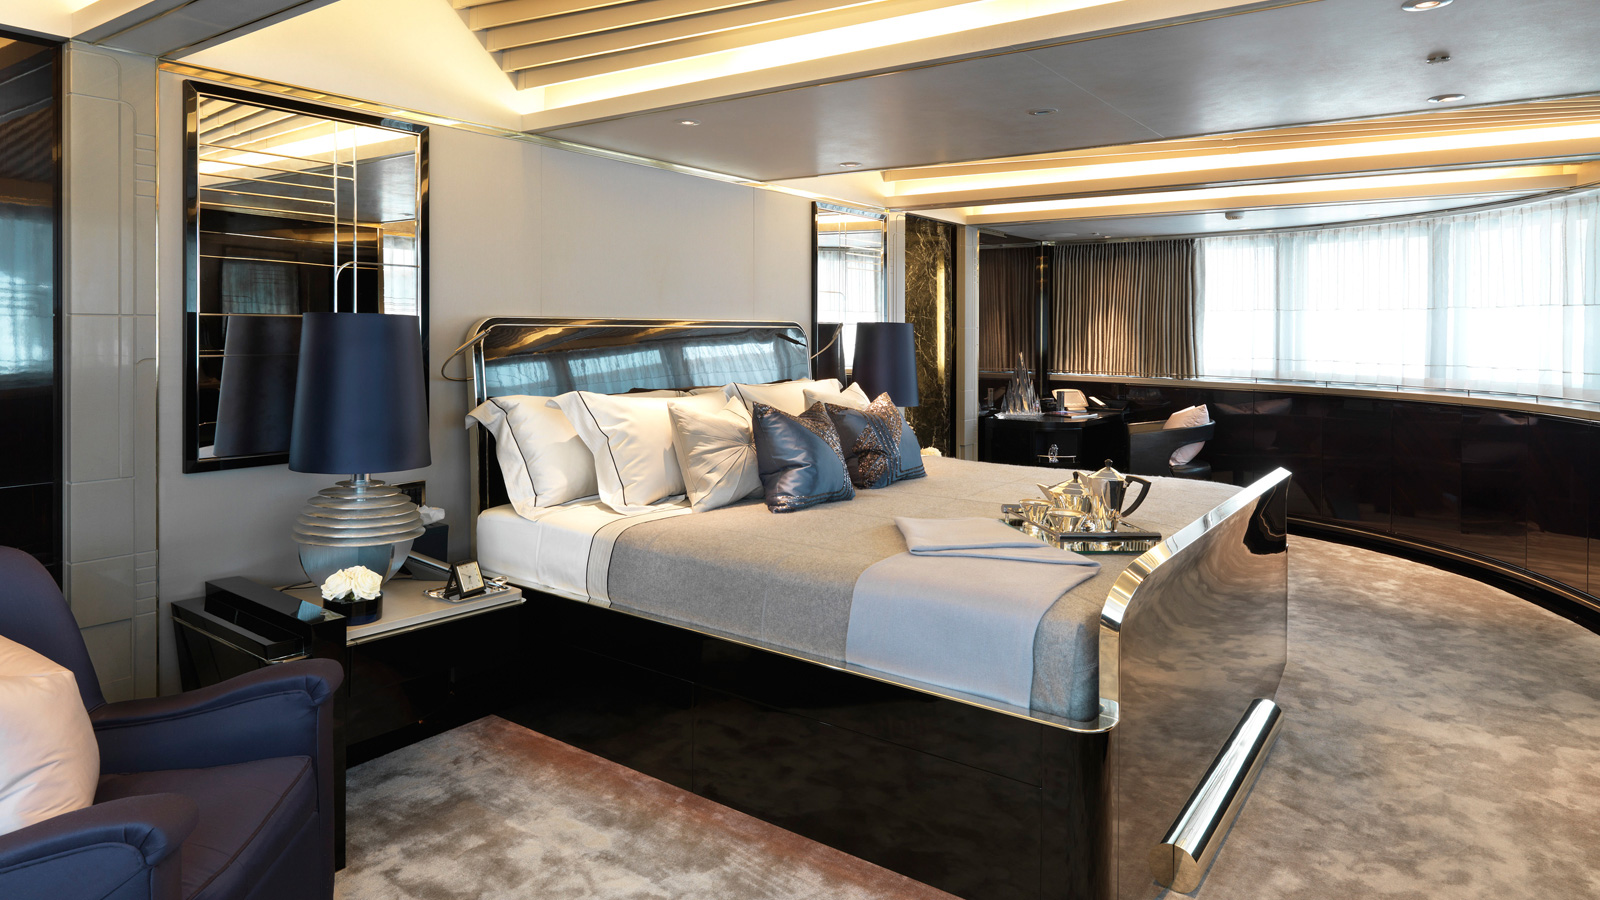 32 Stunning Luxury Master Bedroom Designs Photo Collection: Sealyon Yacht For Sale